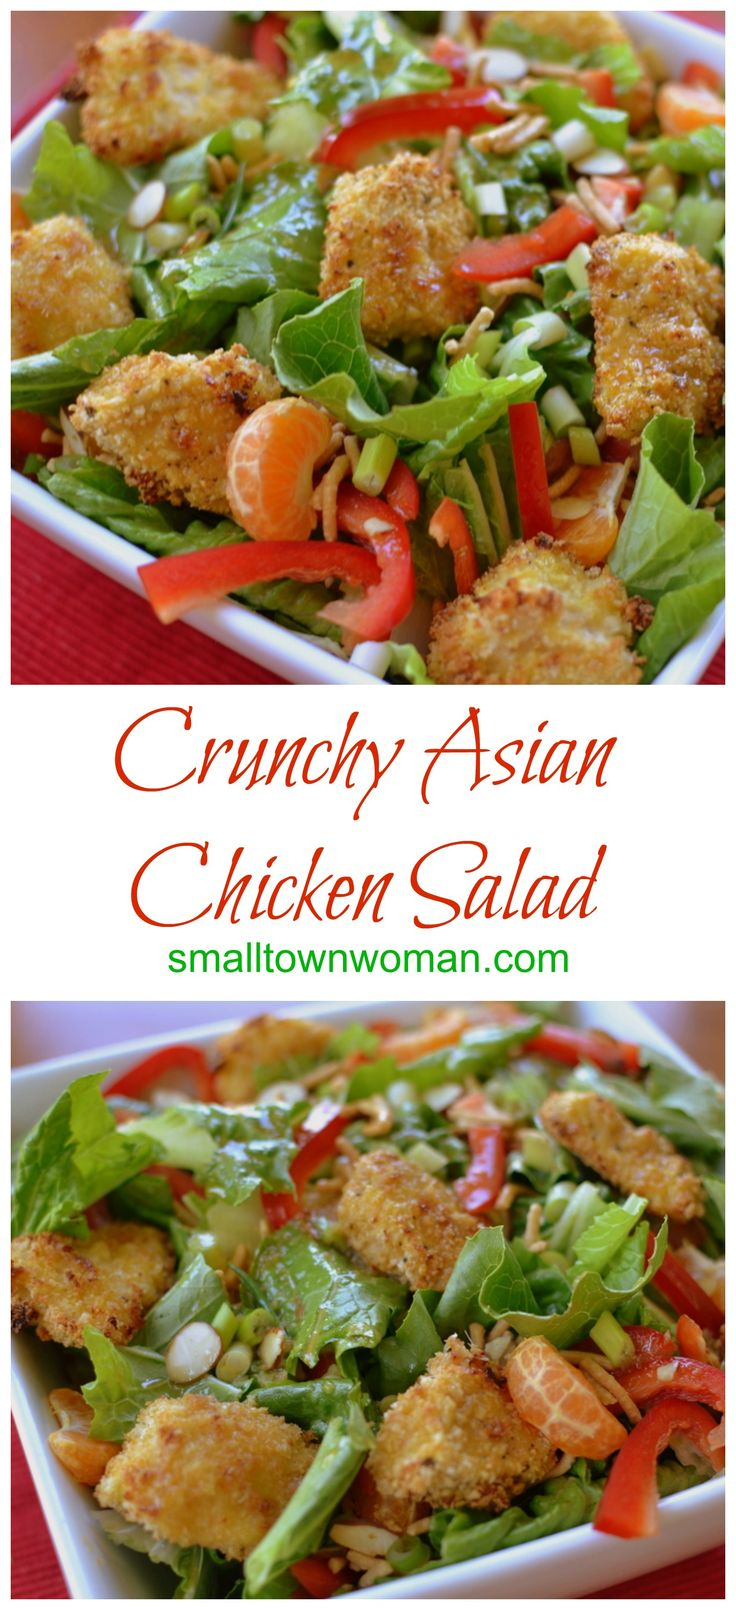 Check out Crunchy Asian Chicken Salad. It's so easy to ...